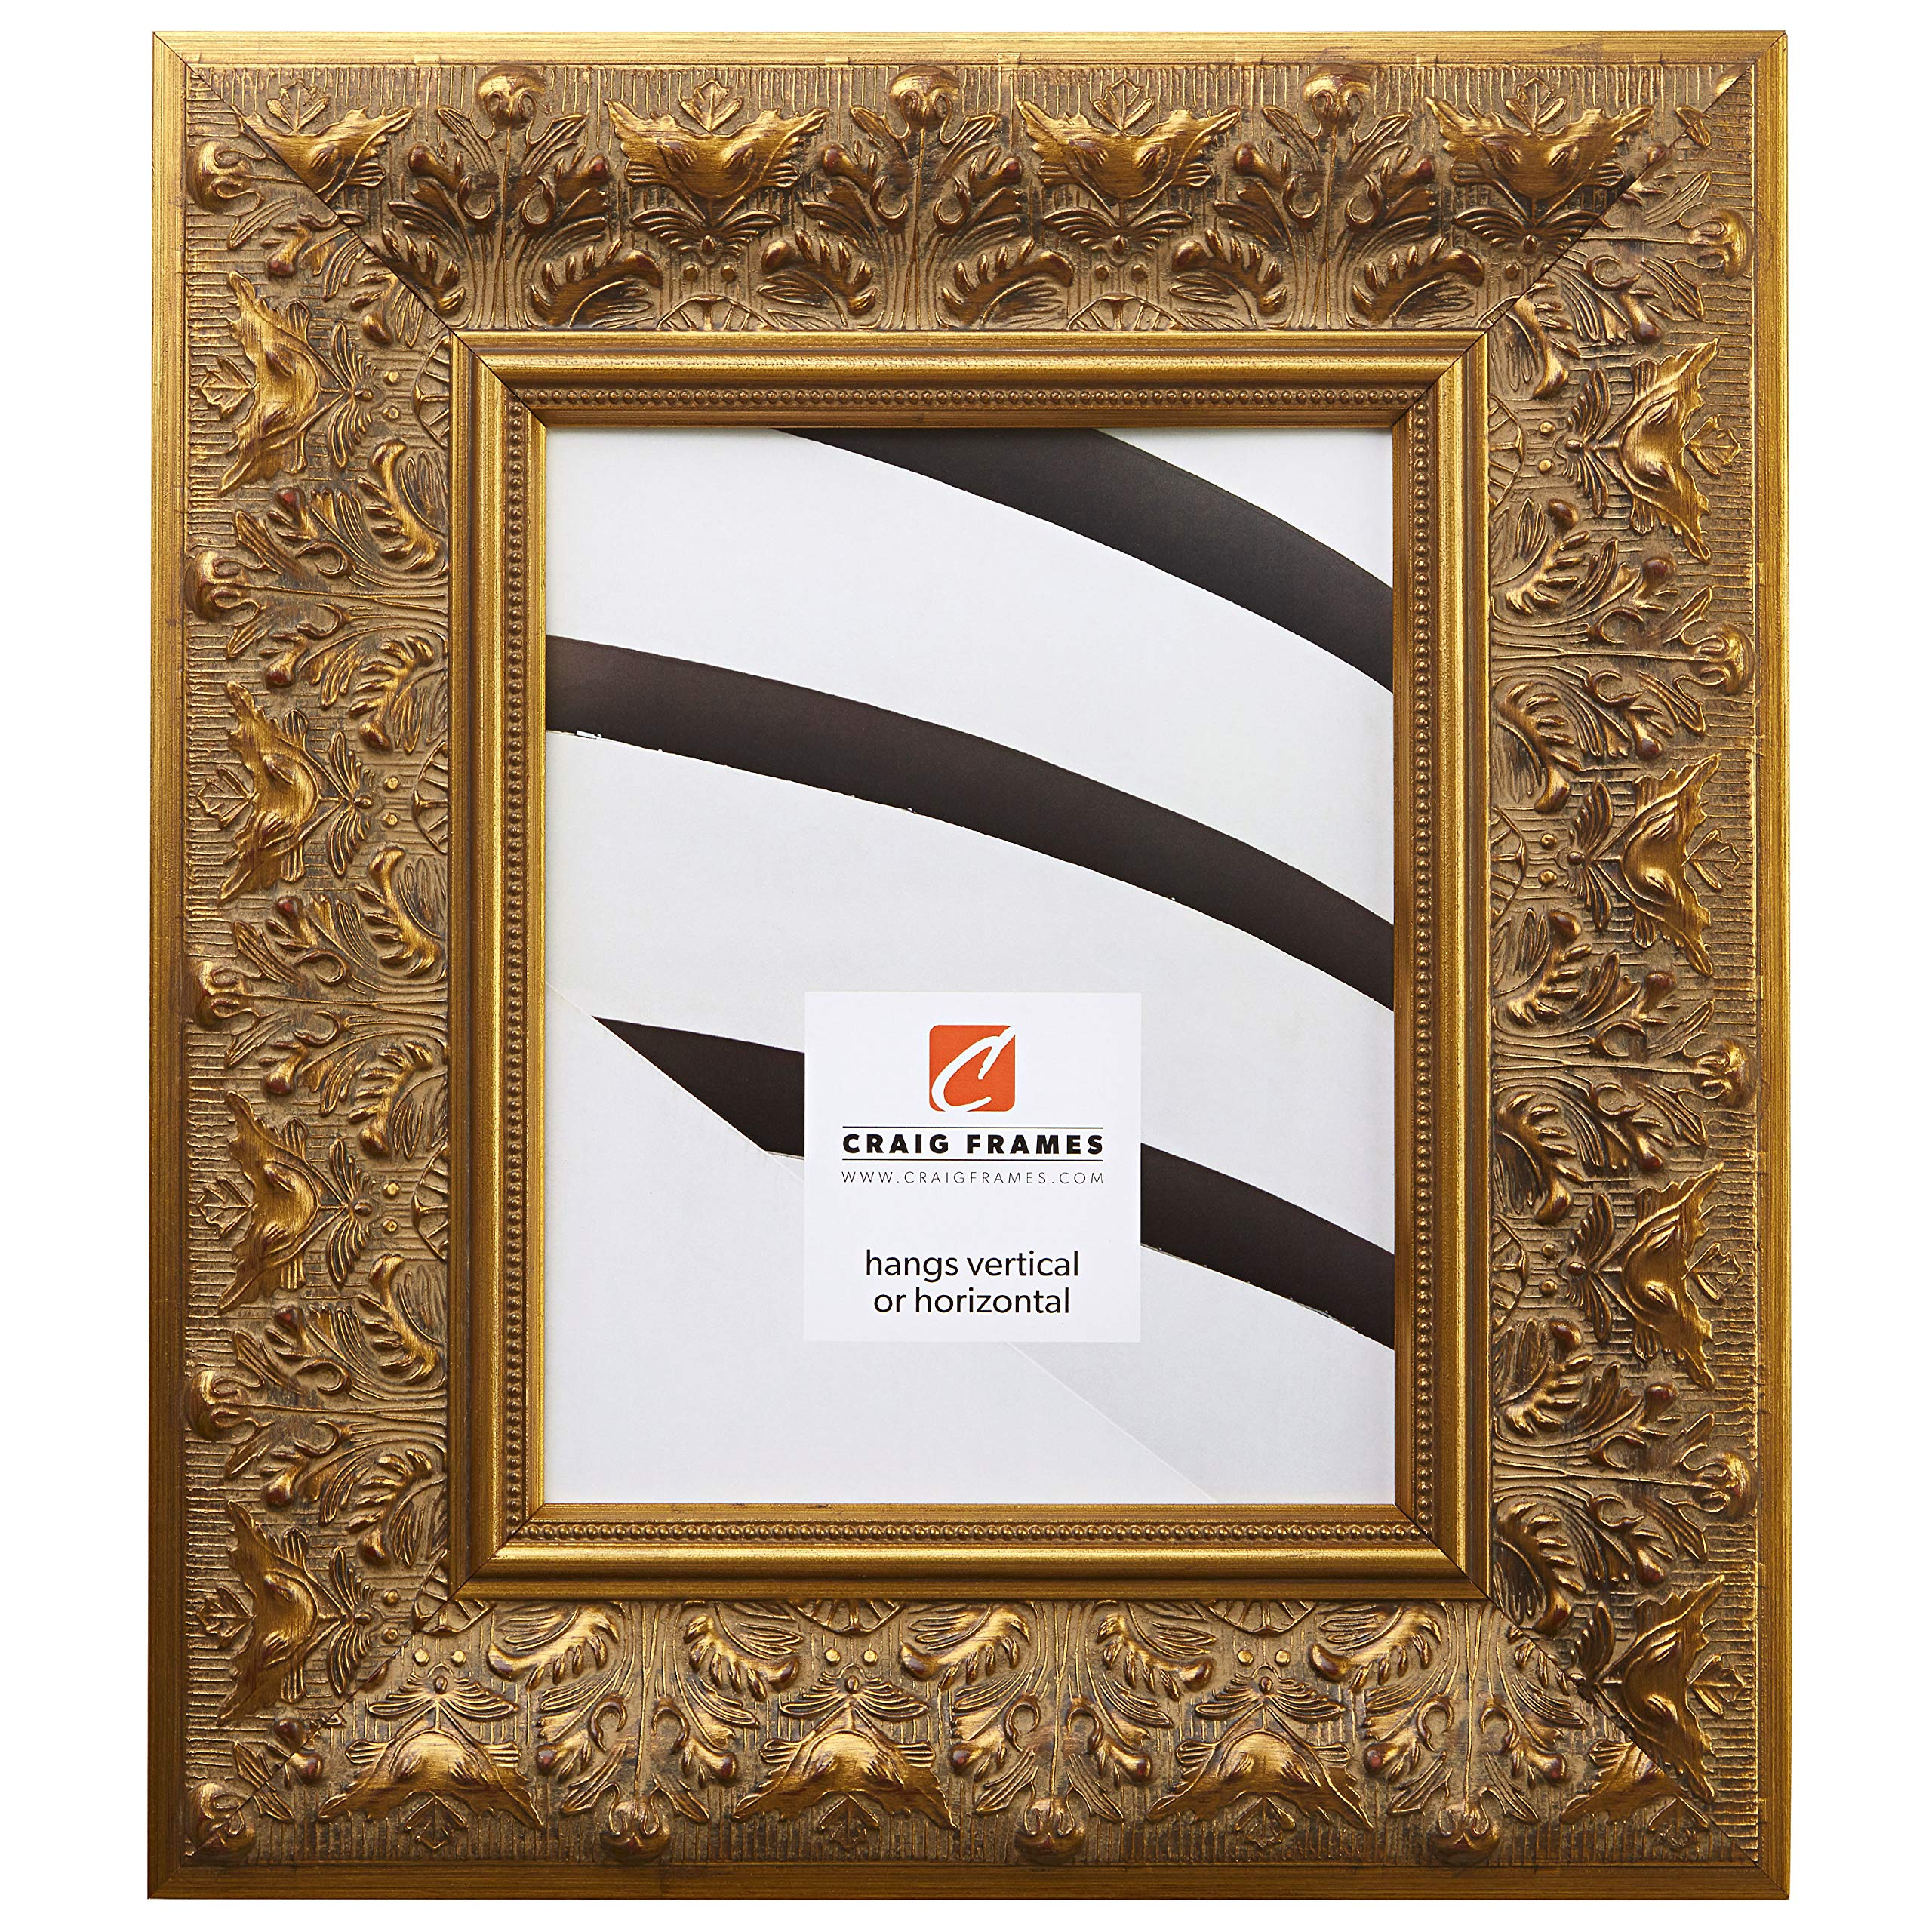 Craig Frames 9472 8 by 10-Inch Picture Frame, Ornate Finish, 3.5-Inch Wide, Weathered Gold